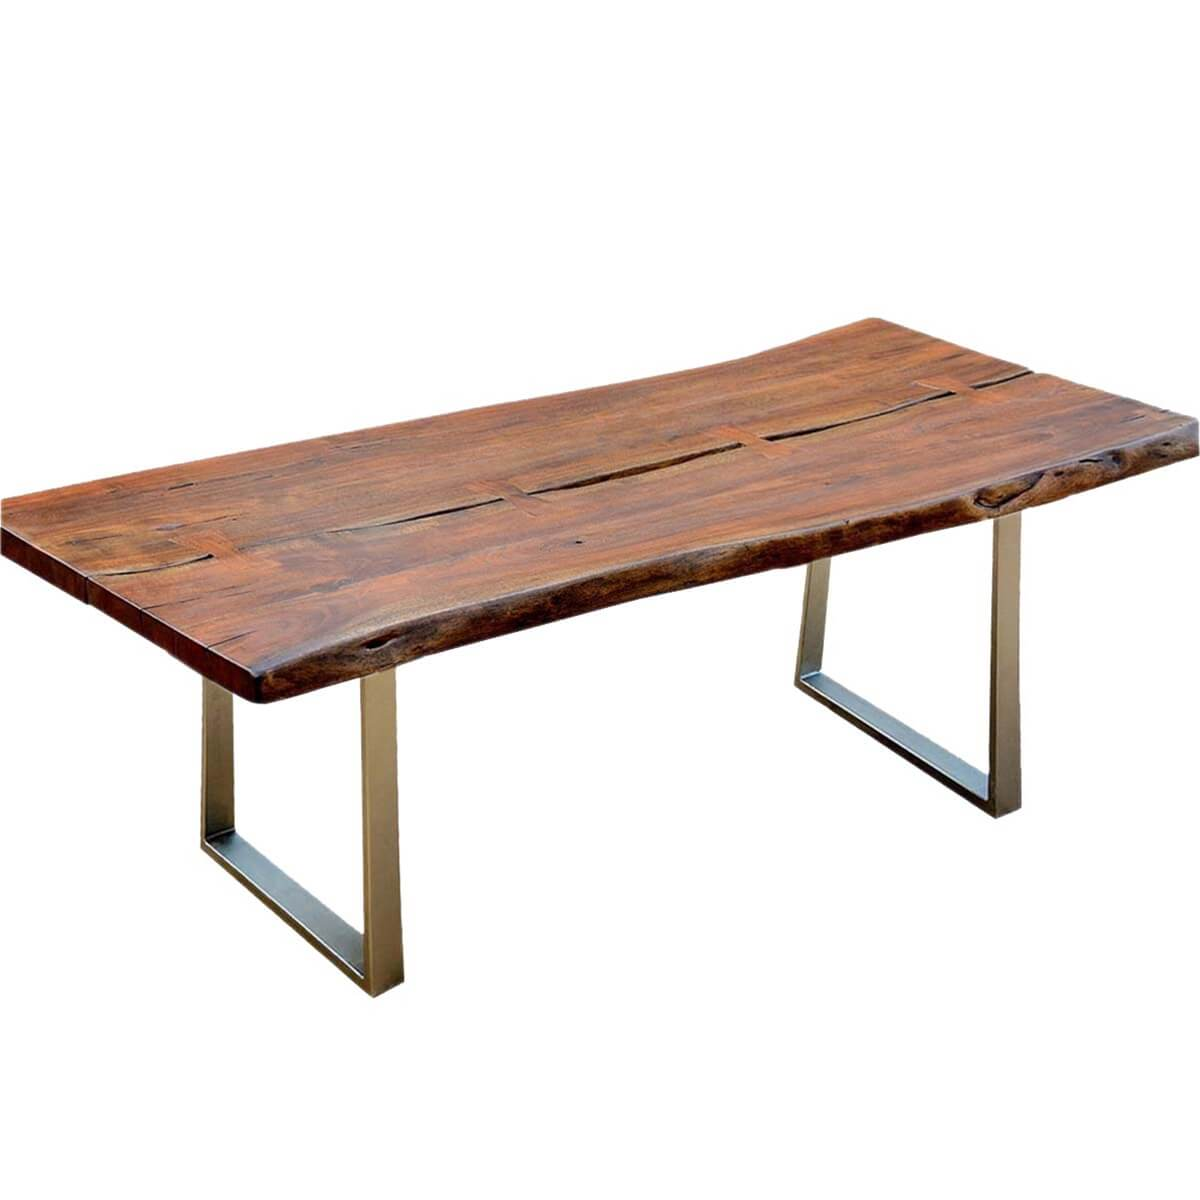 Live edge acacia wood iron rustic large dining table for Hardwood dining table